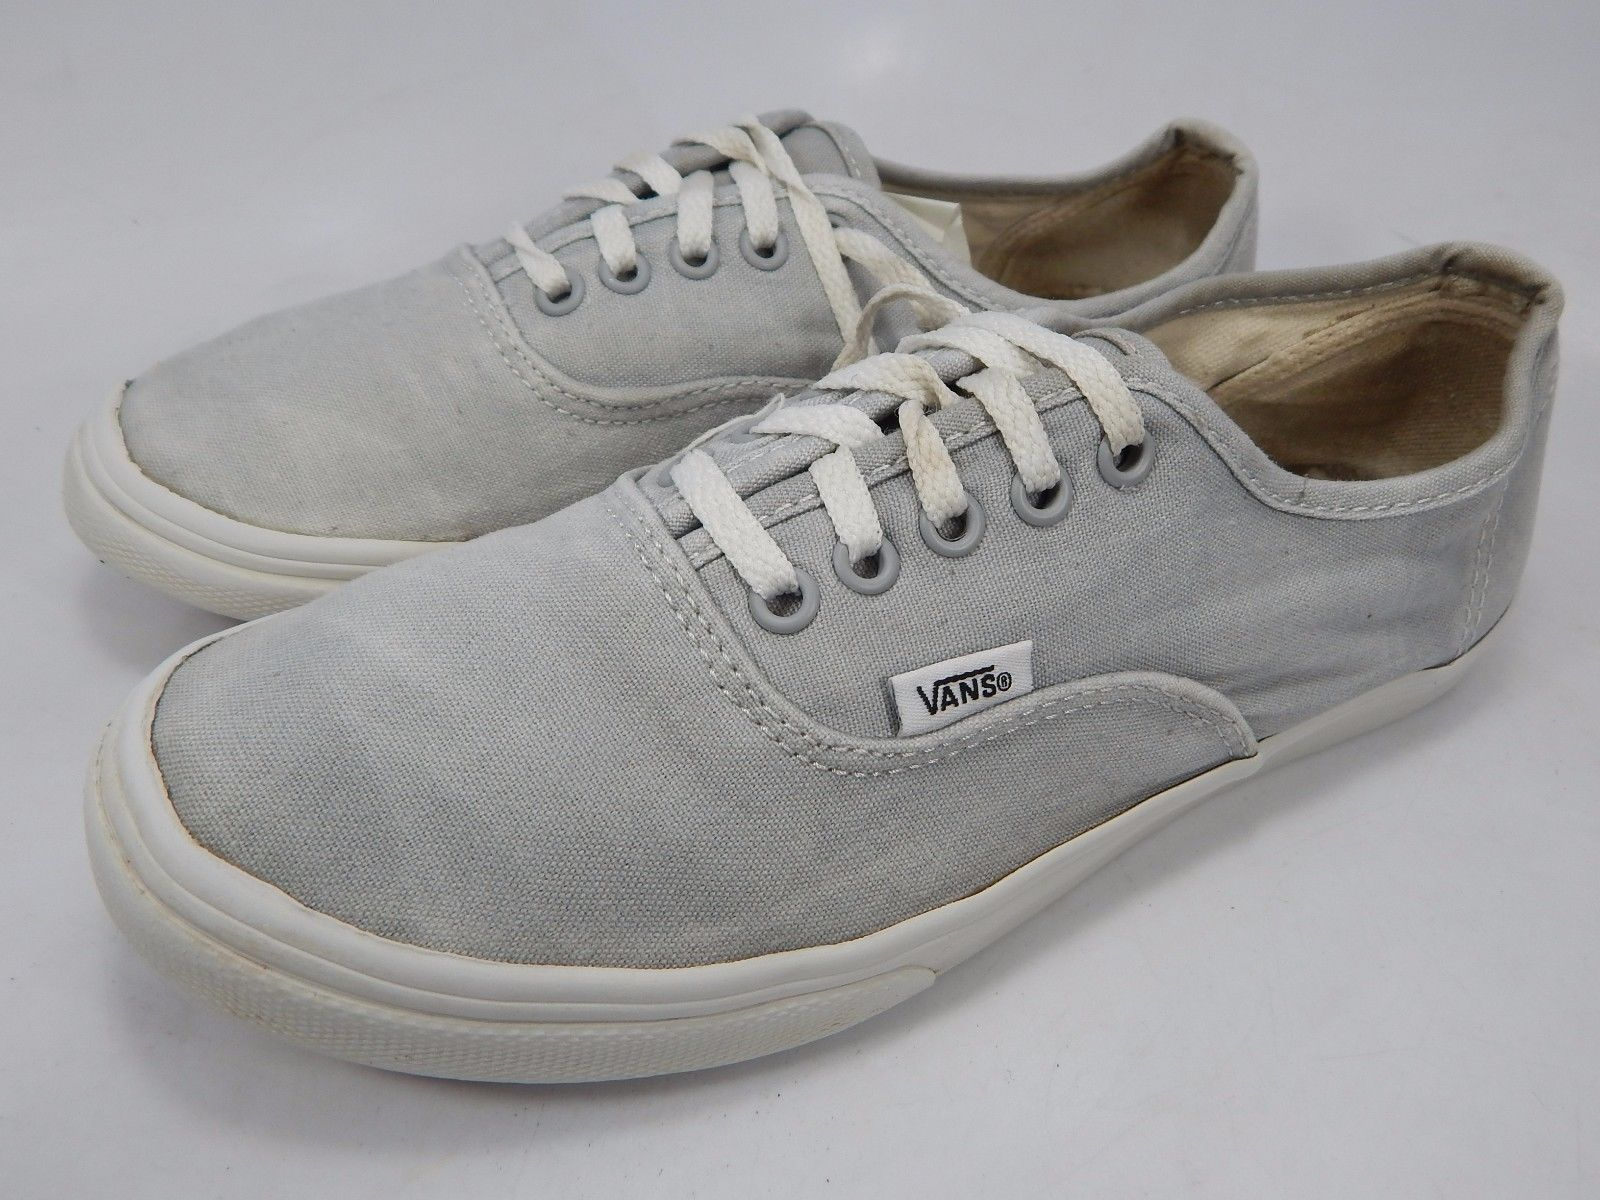 Vans Off The Wall Women's Canvas Casual Skate Shoes Size US 7.5 EU 38 Gray TCQ0